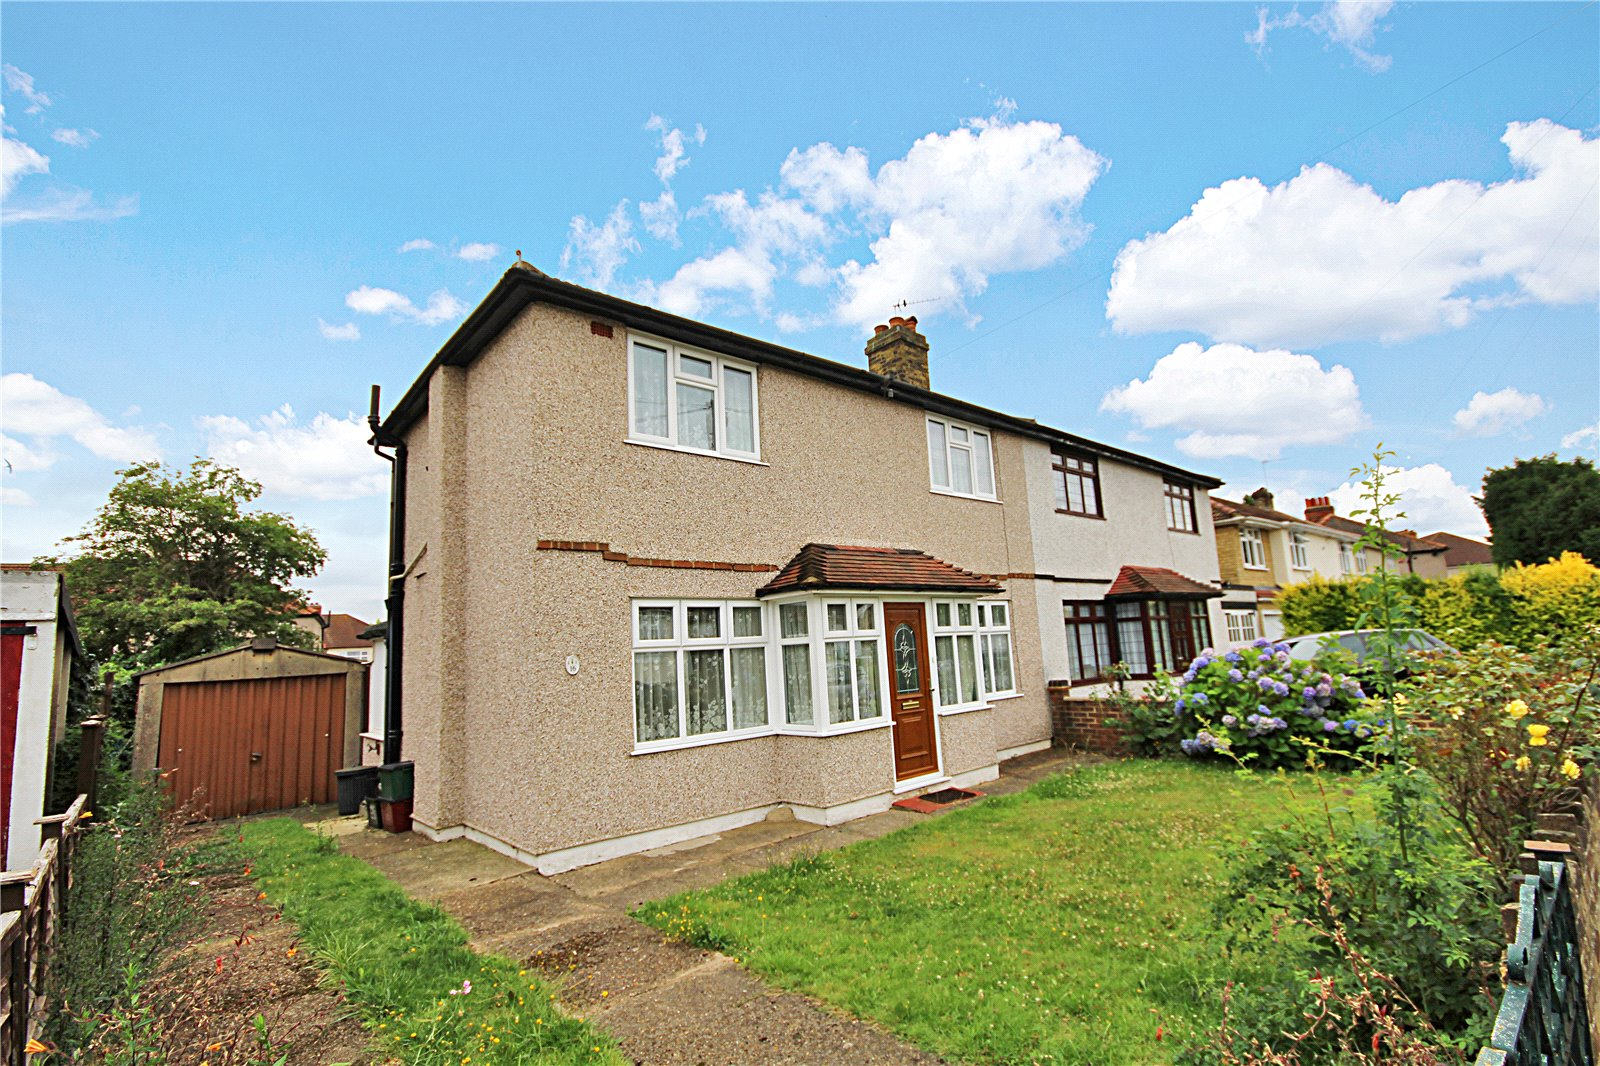 Lancelot Road, South Welling, Kent, DA16